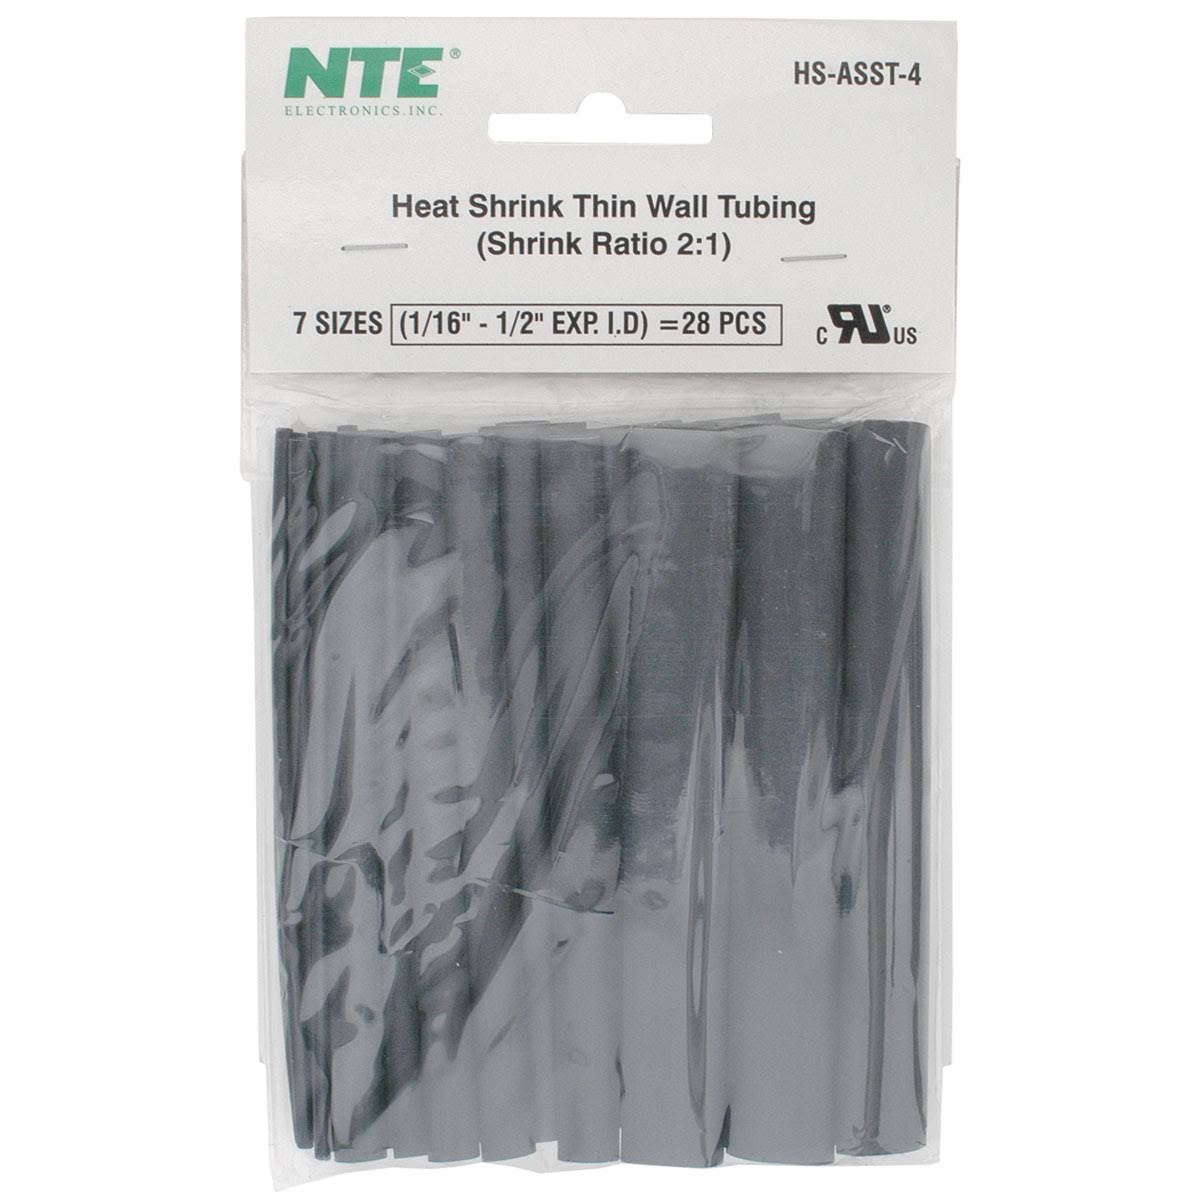 "NTE Electronics Thin Wall Heat Shrink Tubing Kit - Black, Assorted Diameter, 4"" Length, 28pcs"